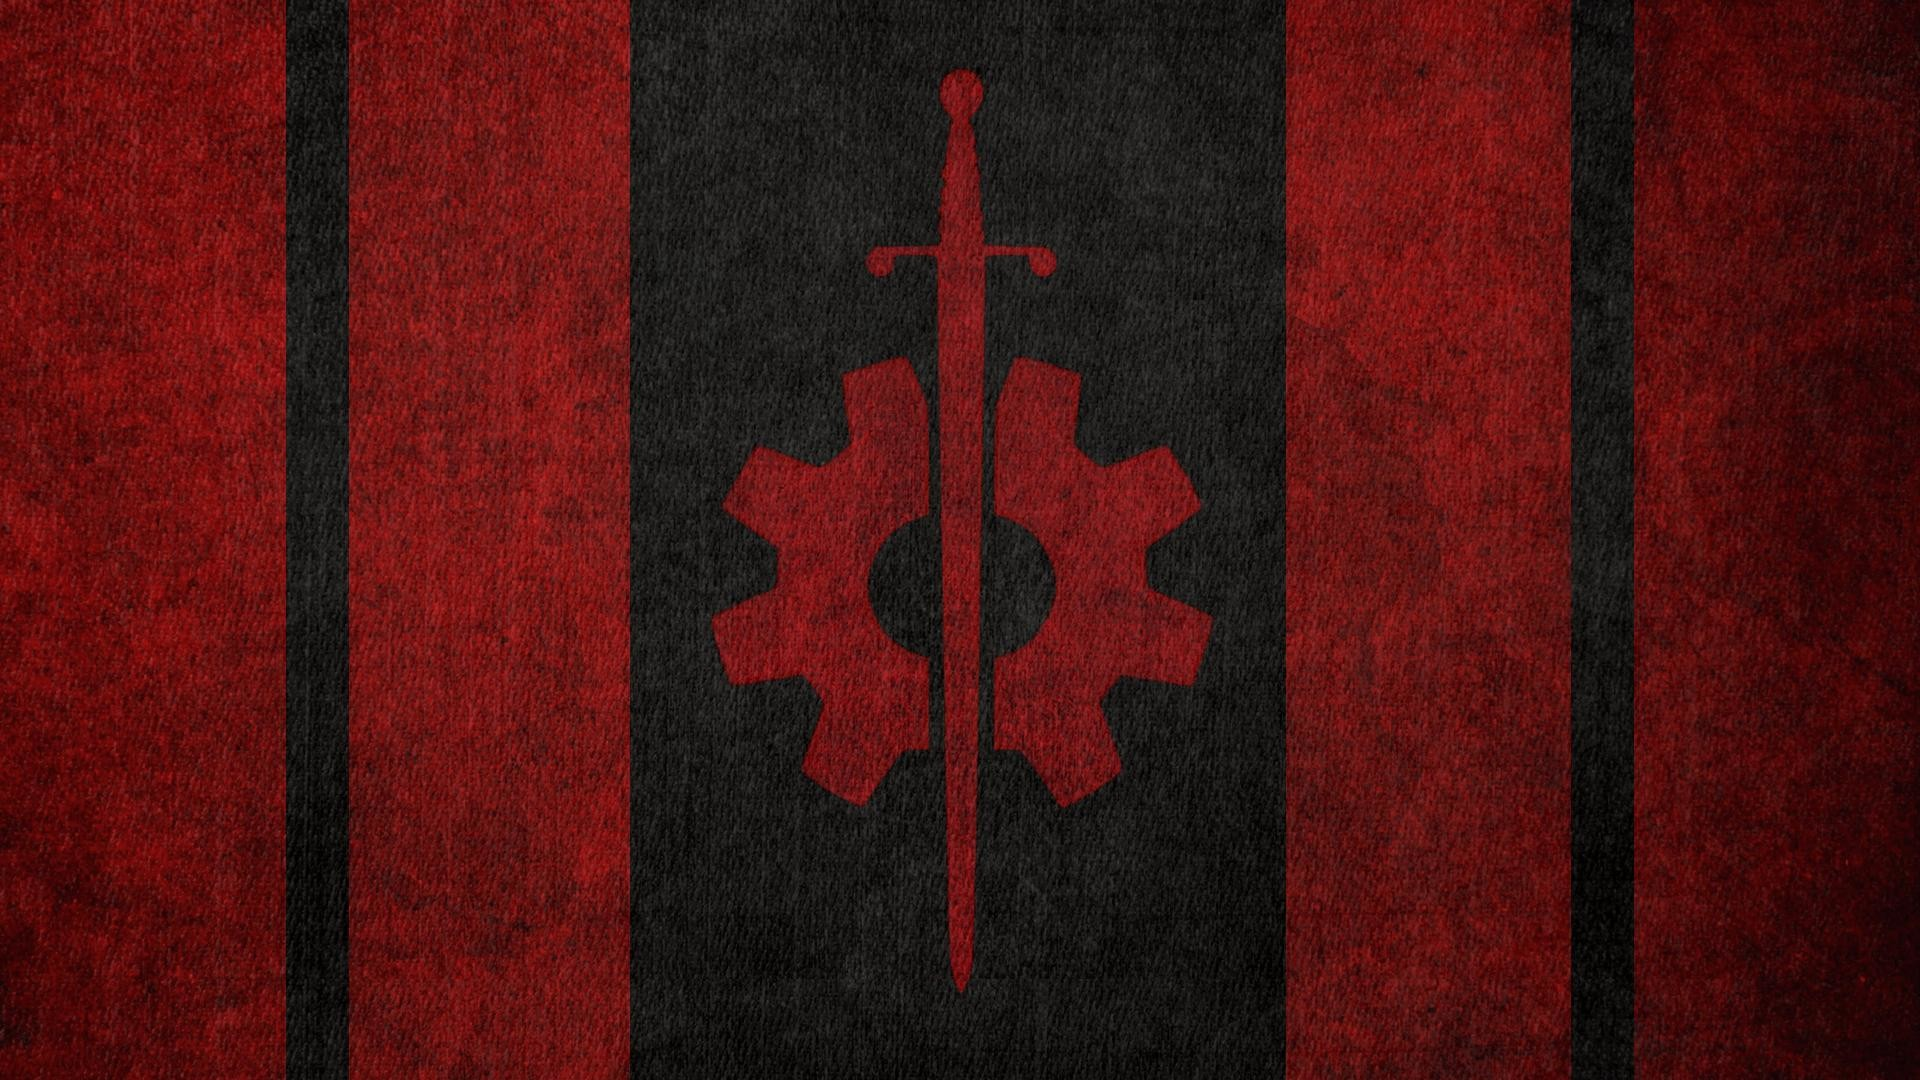 fallout-game-flag-brotherhood-outcasts-sword-symbol-HD.jpg (1920×1080) |  Pattern | Pinterest | Texas flags, Fallout and Wallpaper